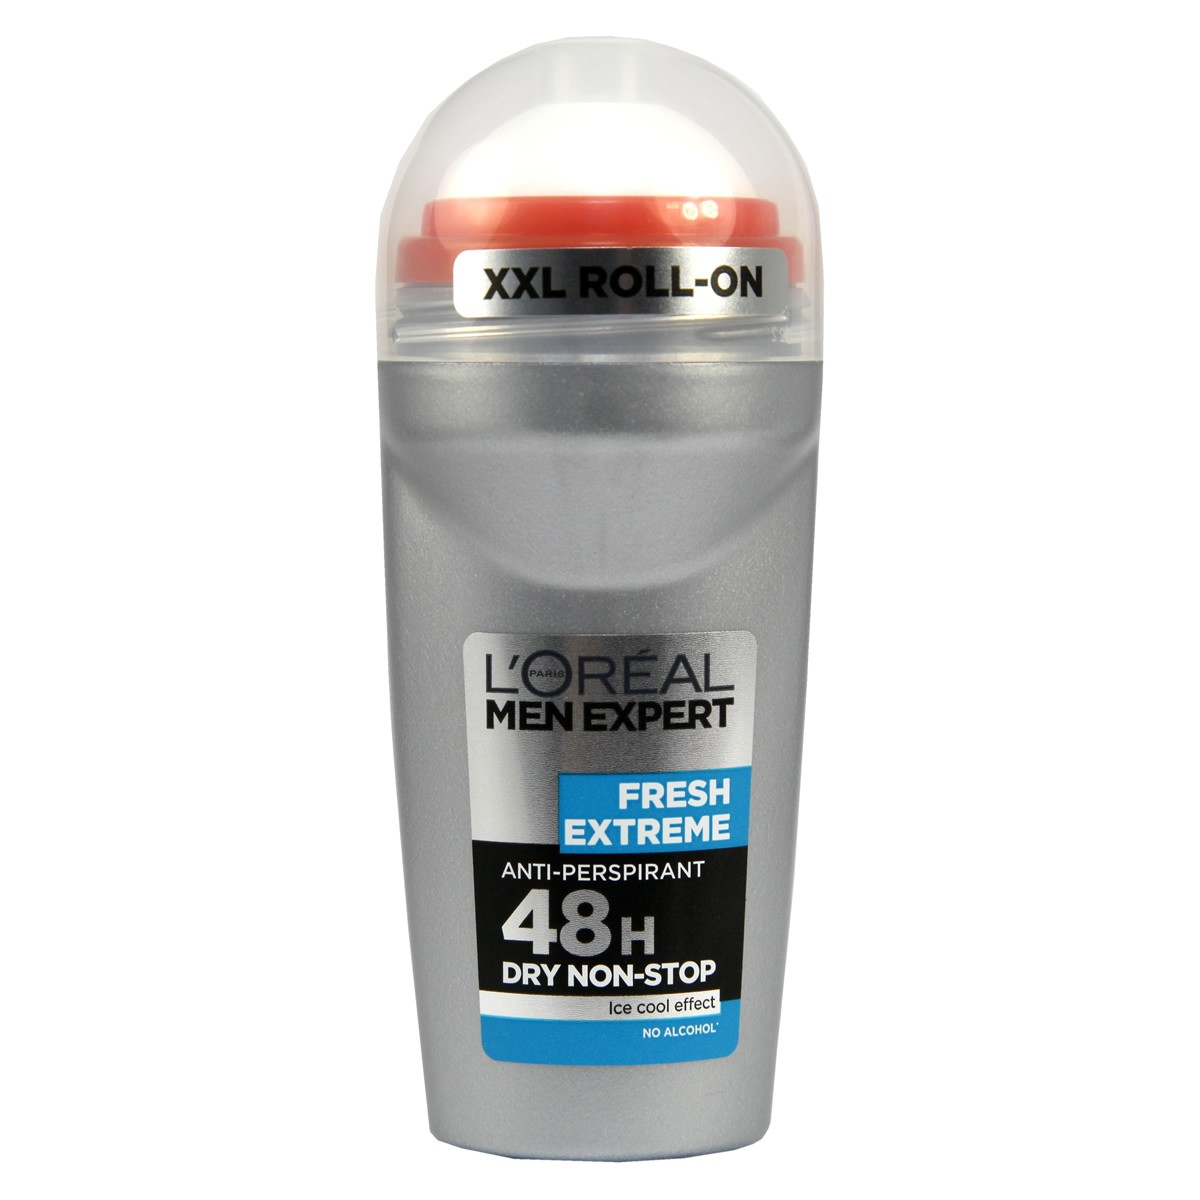 L'Oreal Paris Men Expert Fresh Extreme Deodorant 50ml Roll-On